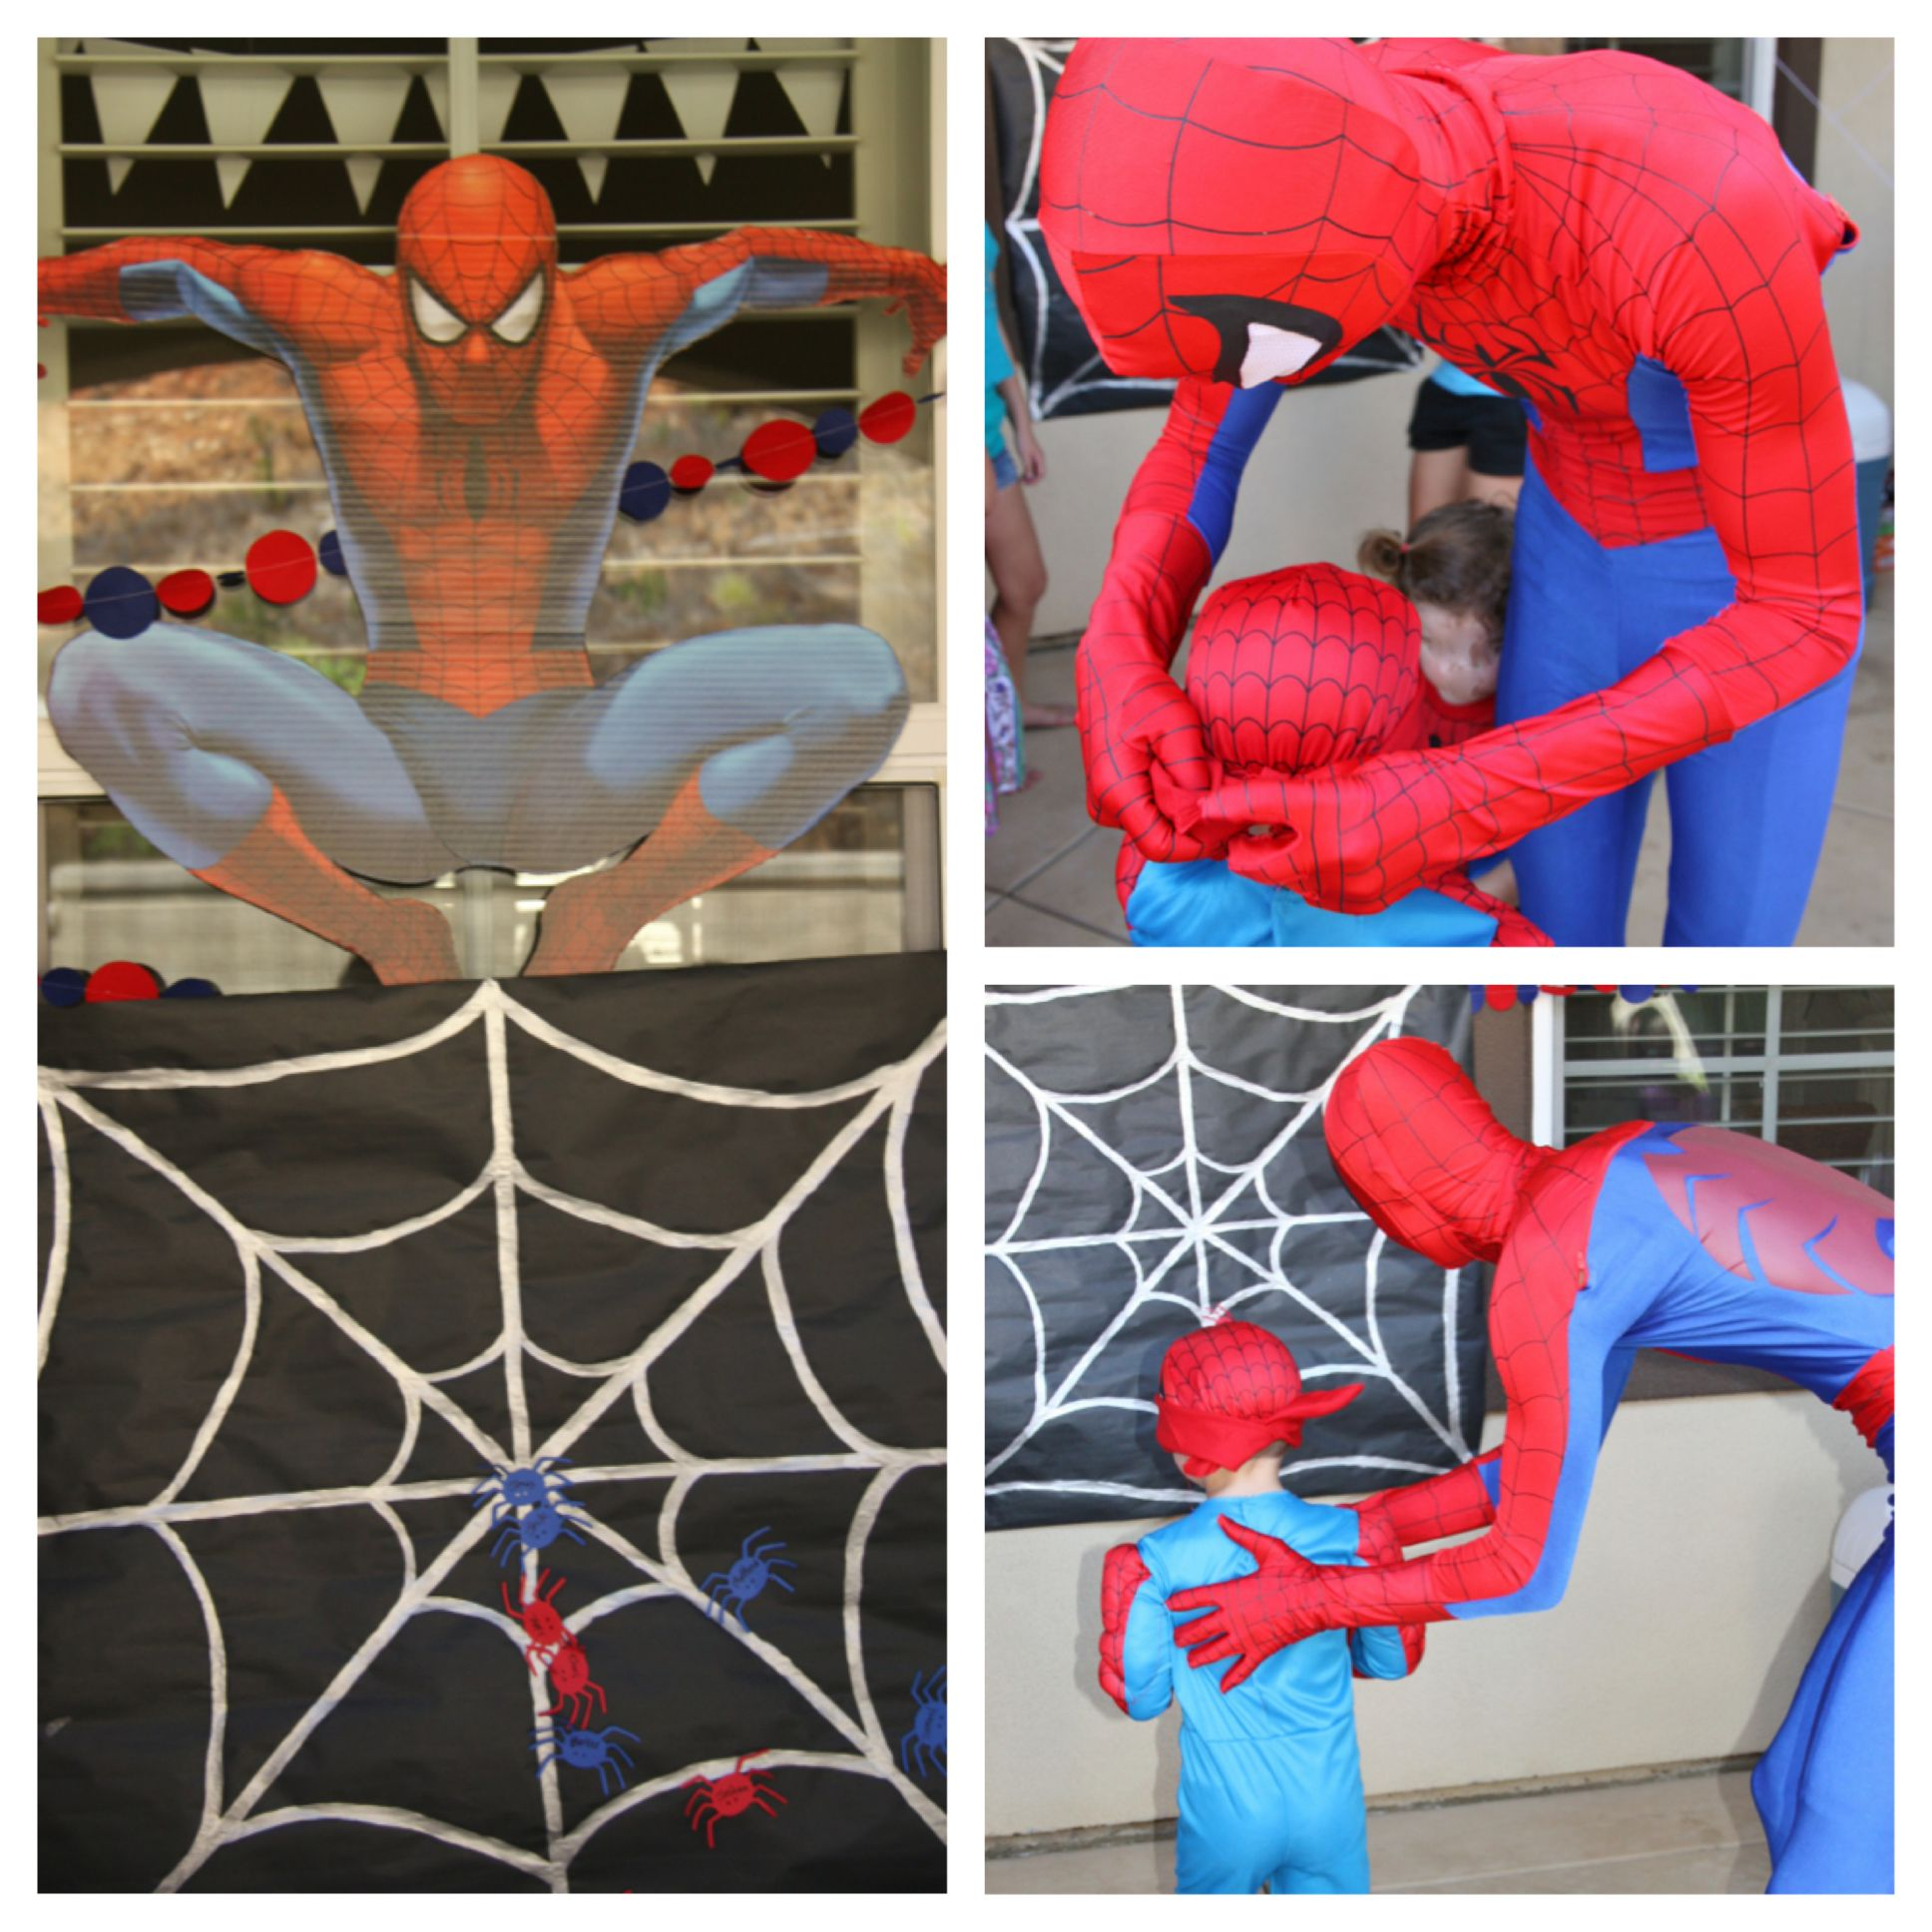 awesome spider man party ideas pin the spider on the web and